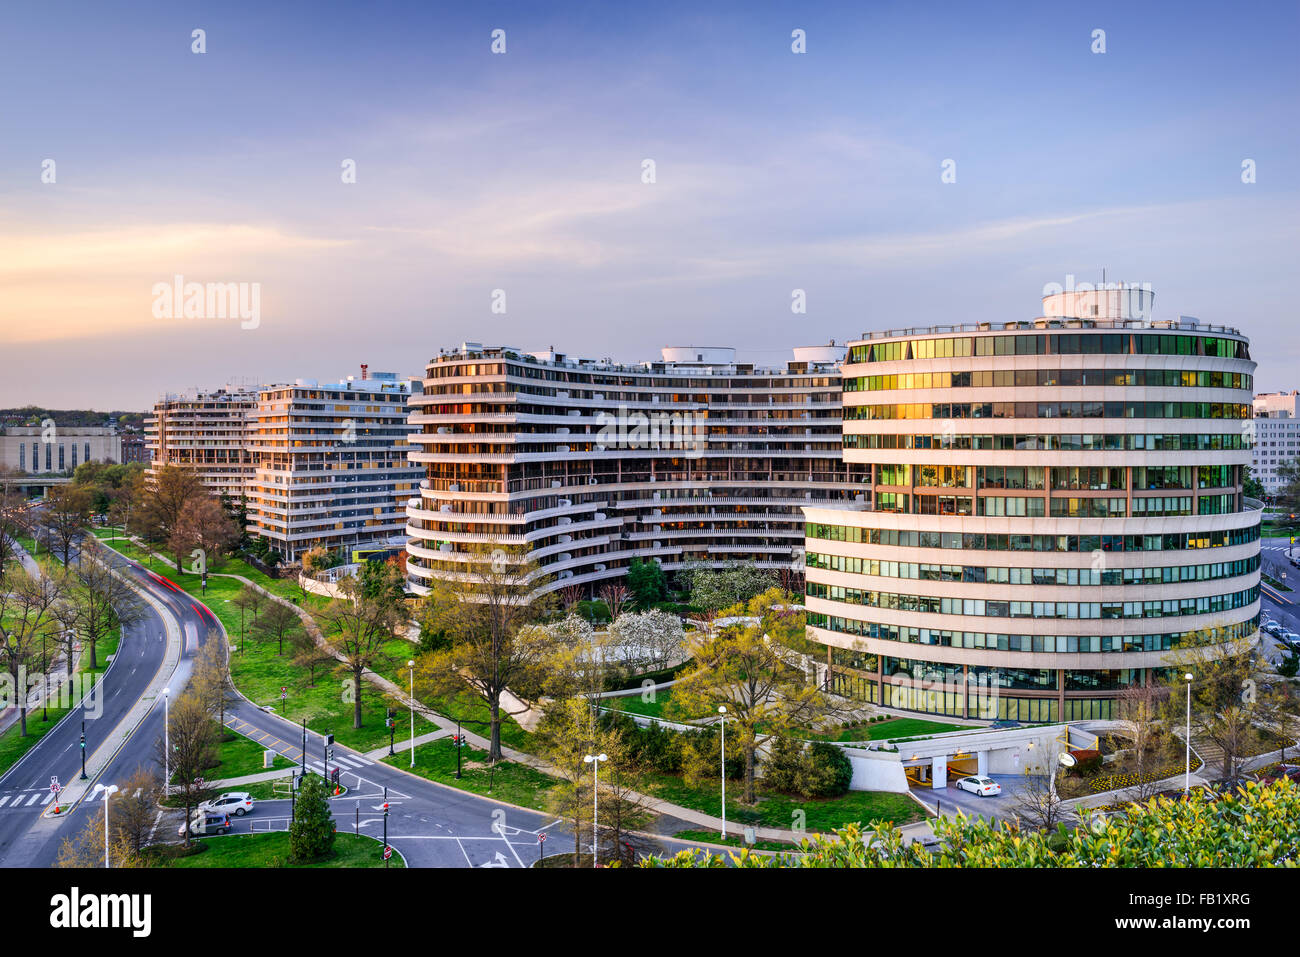 the watergate complex in foggy bottom washington dc usa